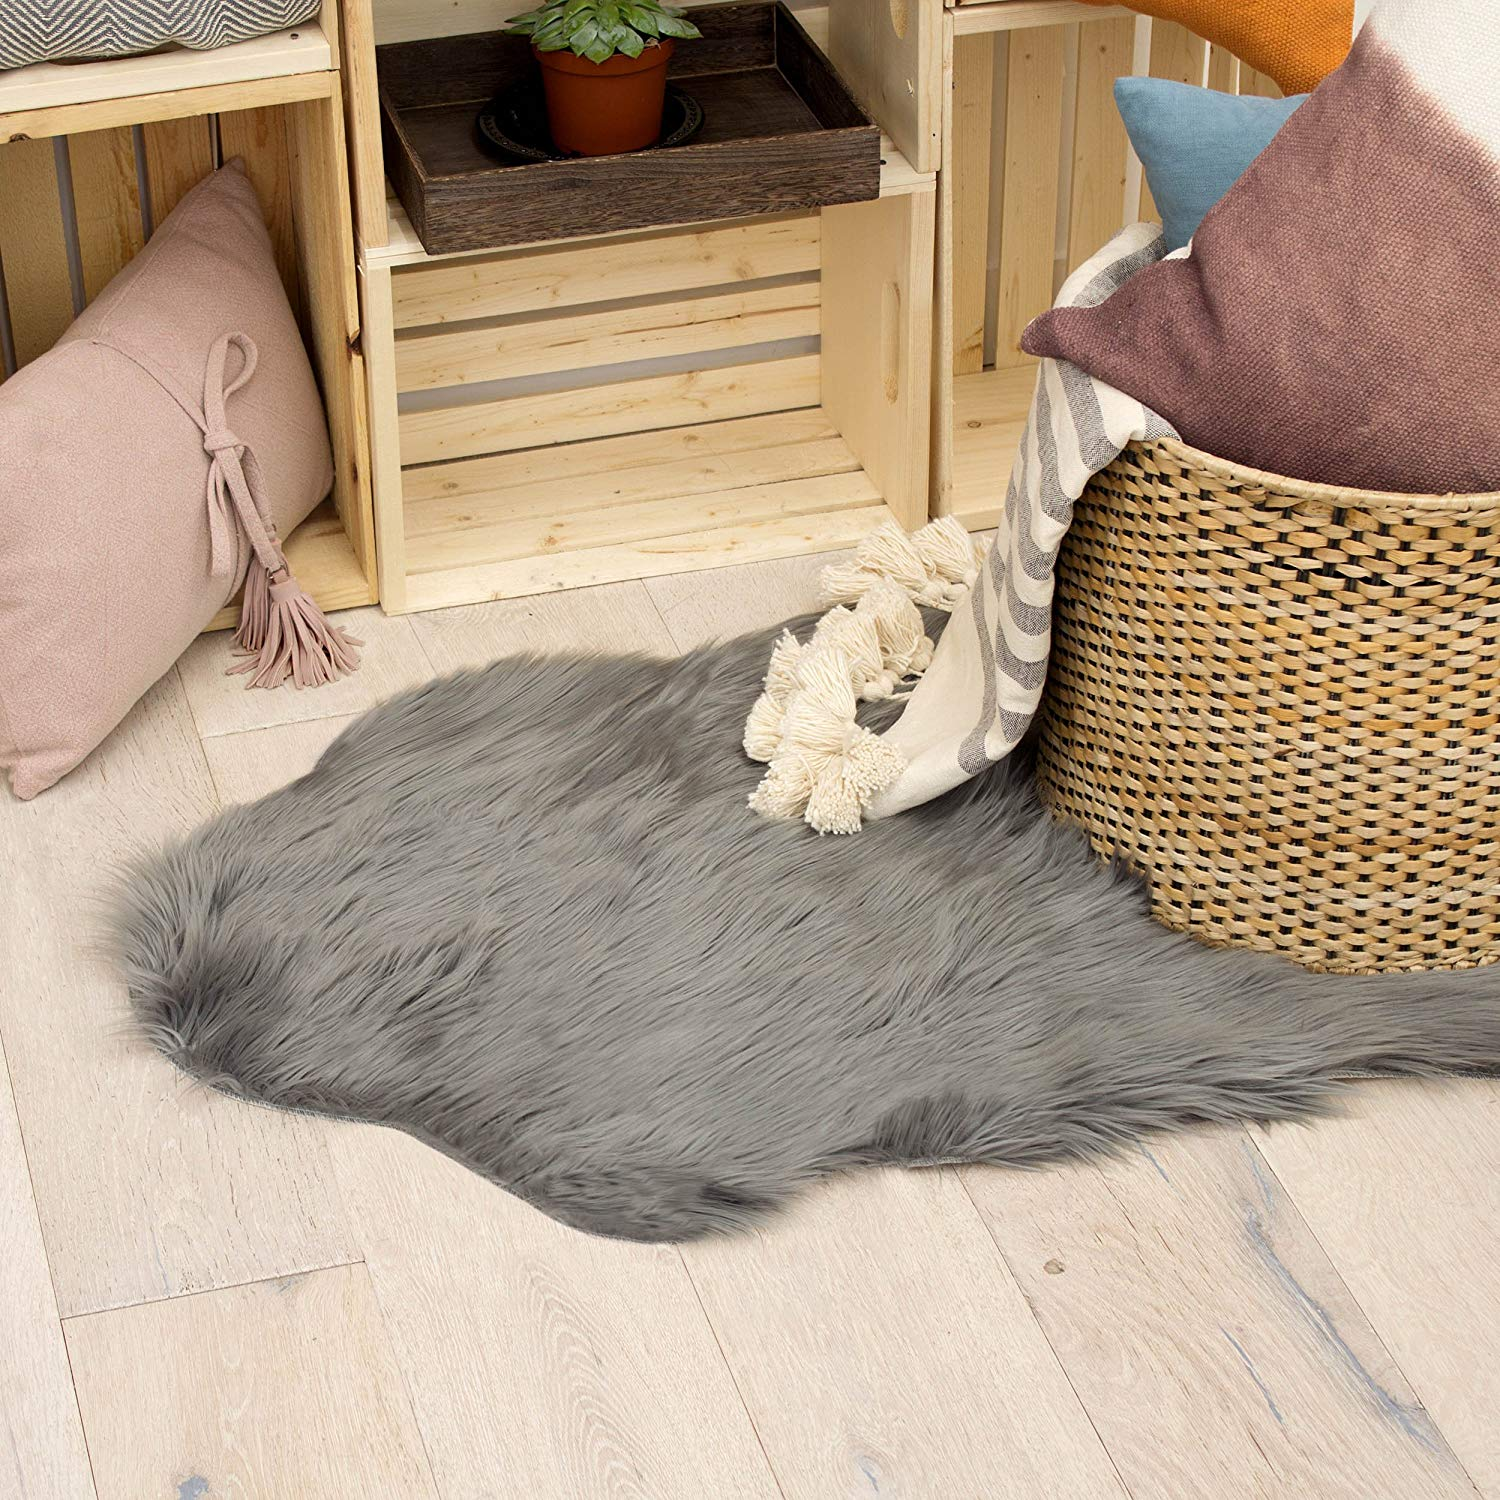 Jean Pierre Faux-Fur 22 X 60 in. Runner Area Rug